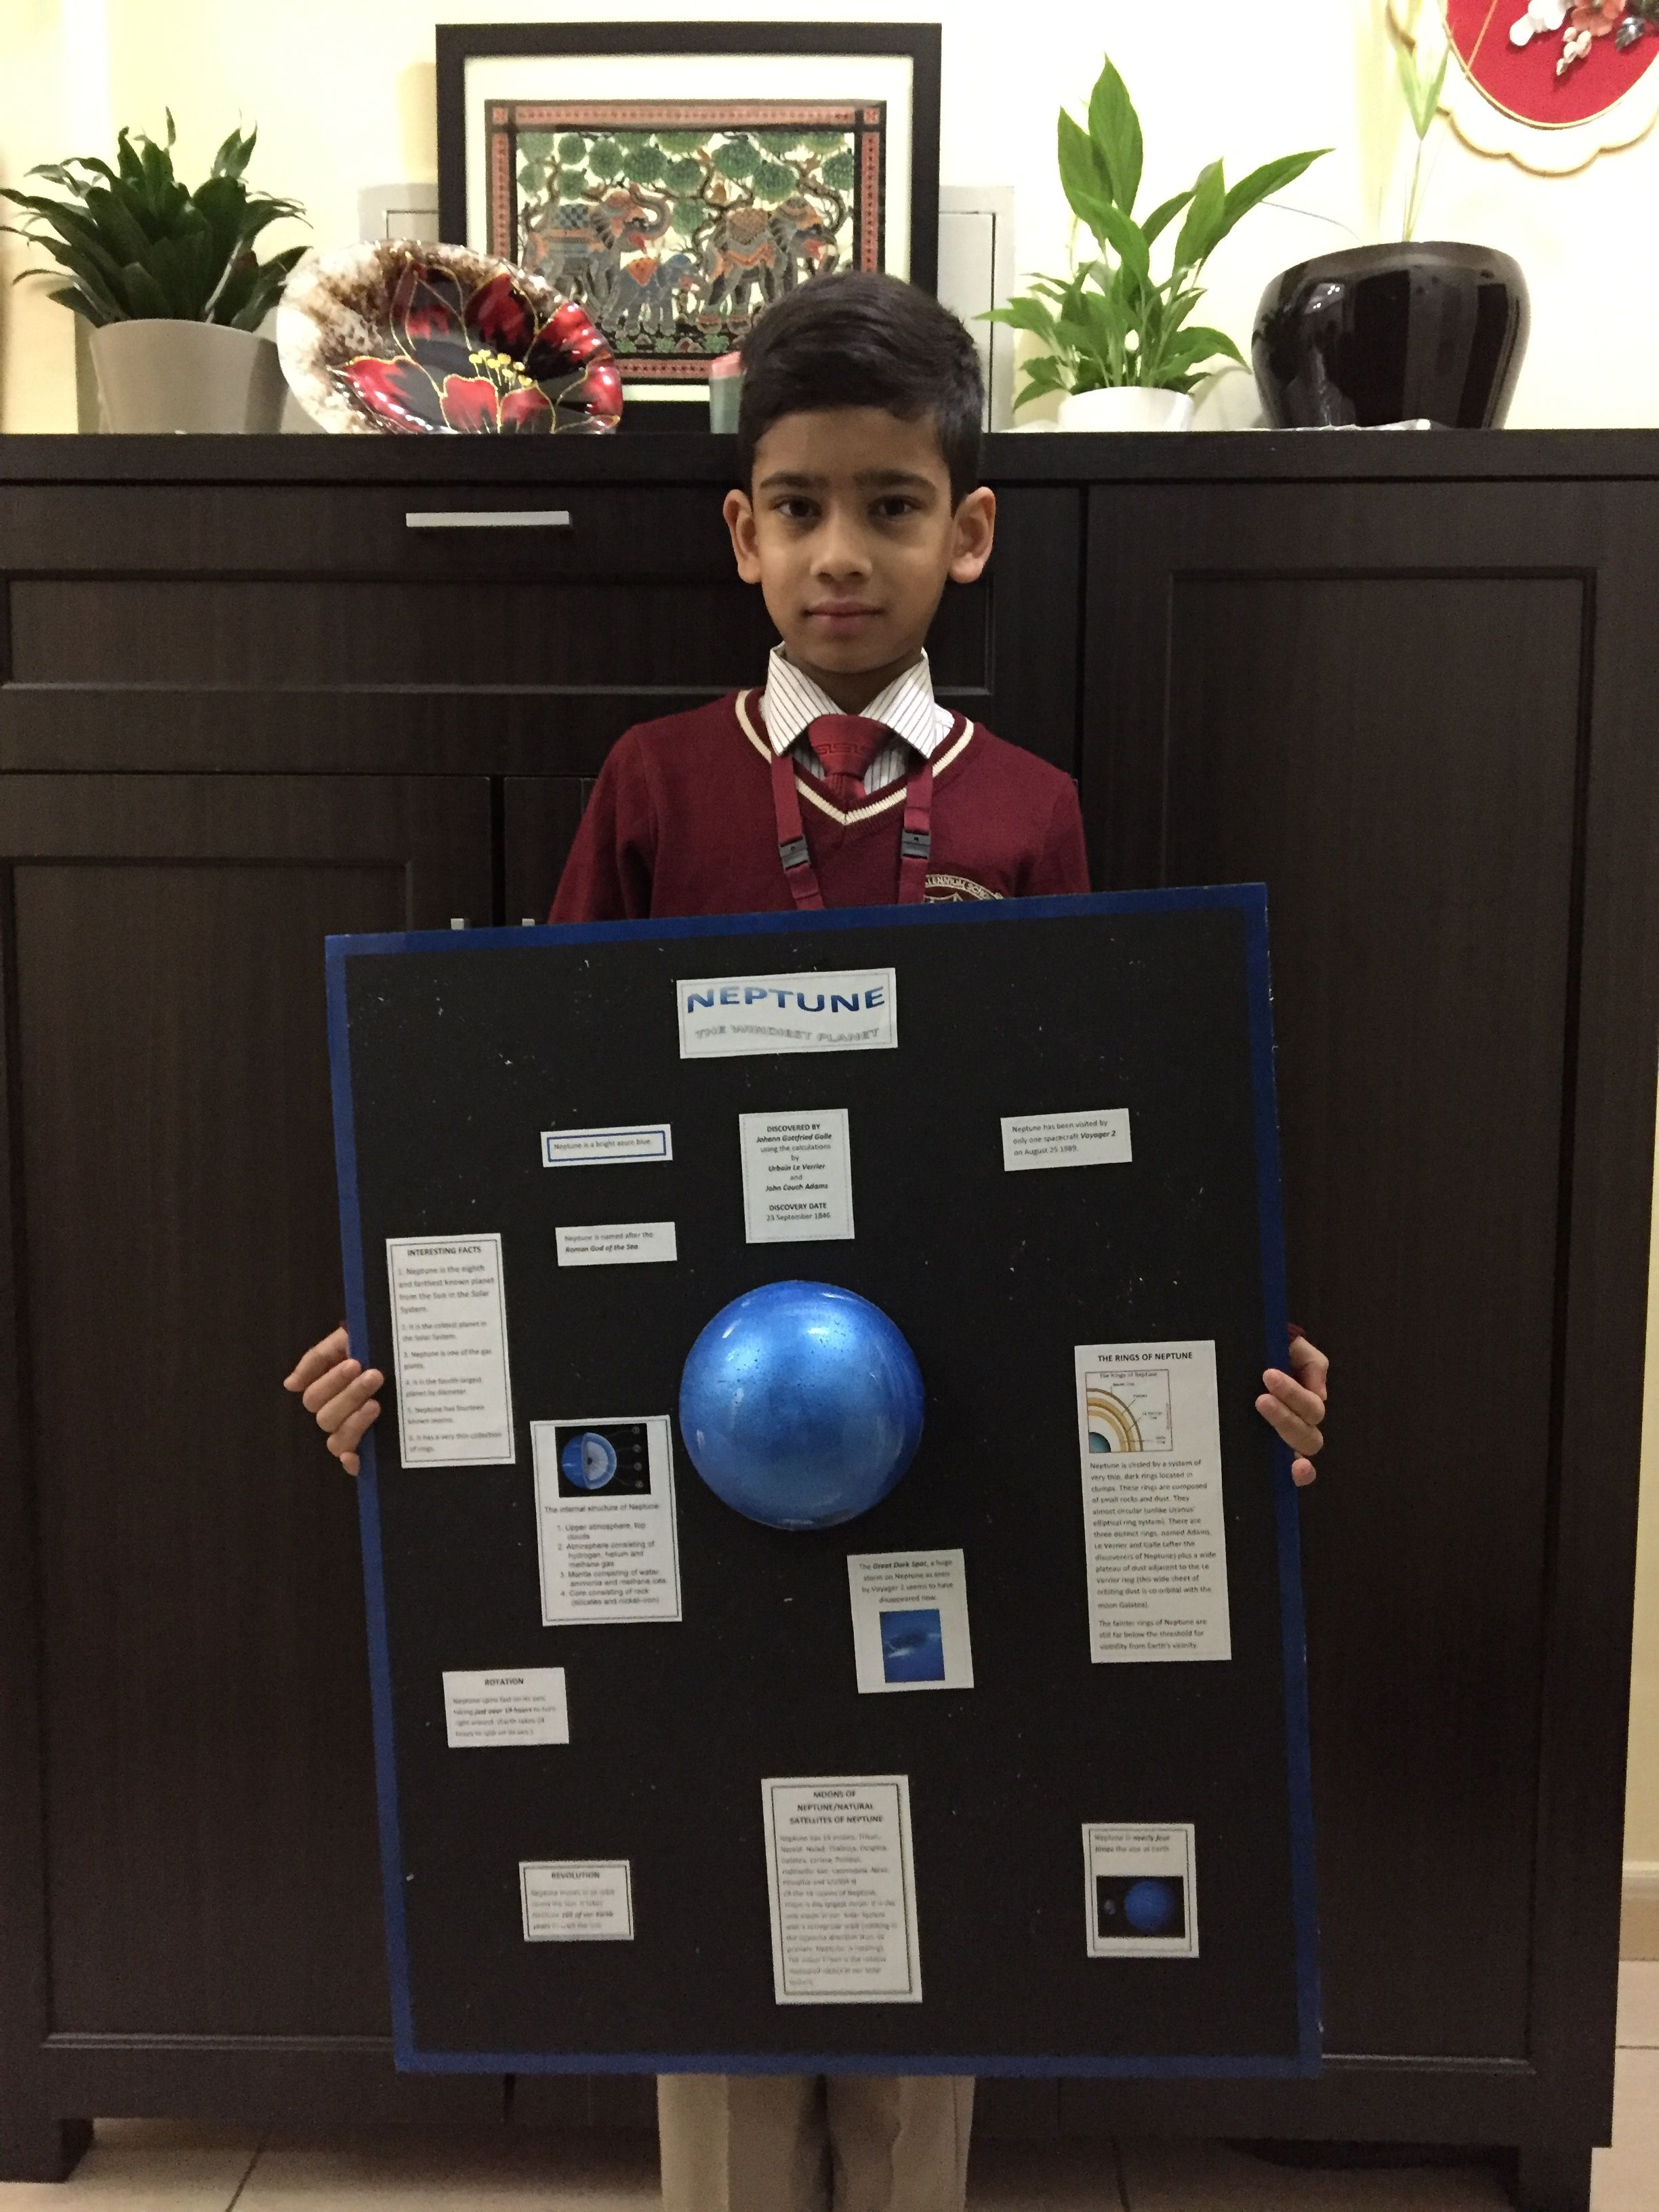 Pin by Ayan Nur on Teaching Neptune project School